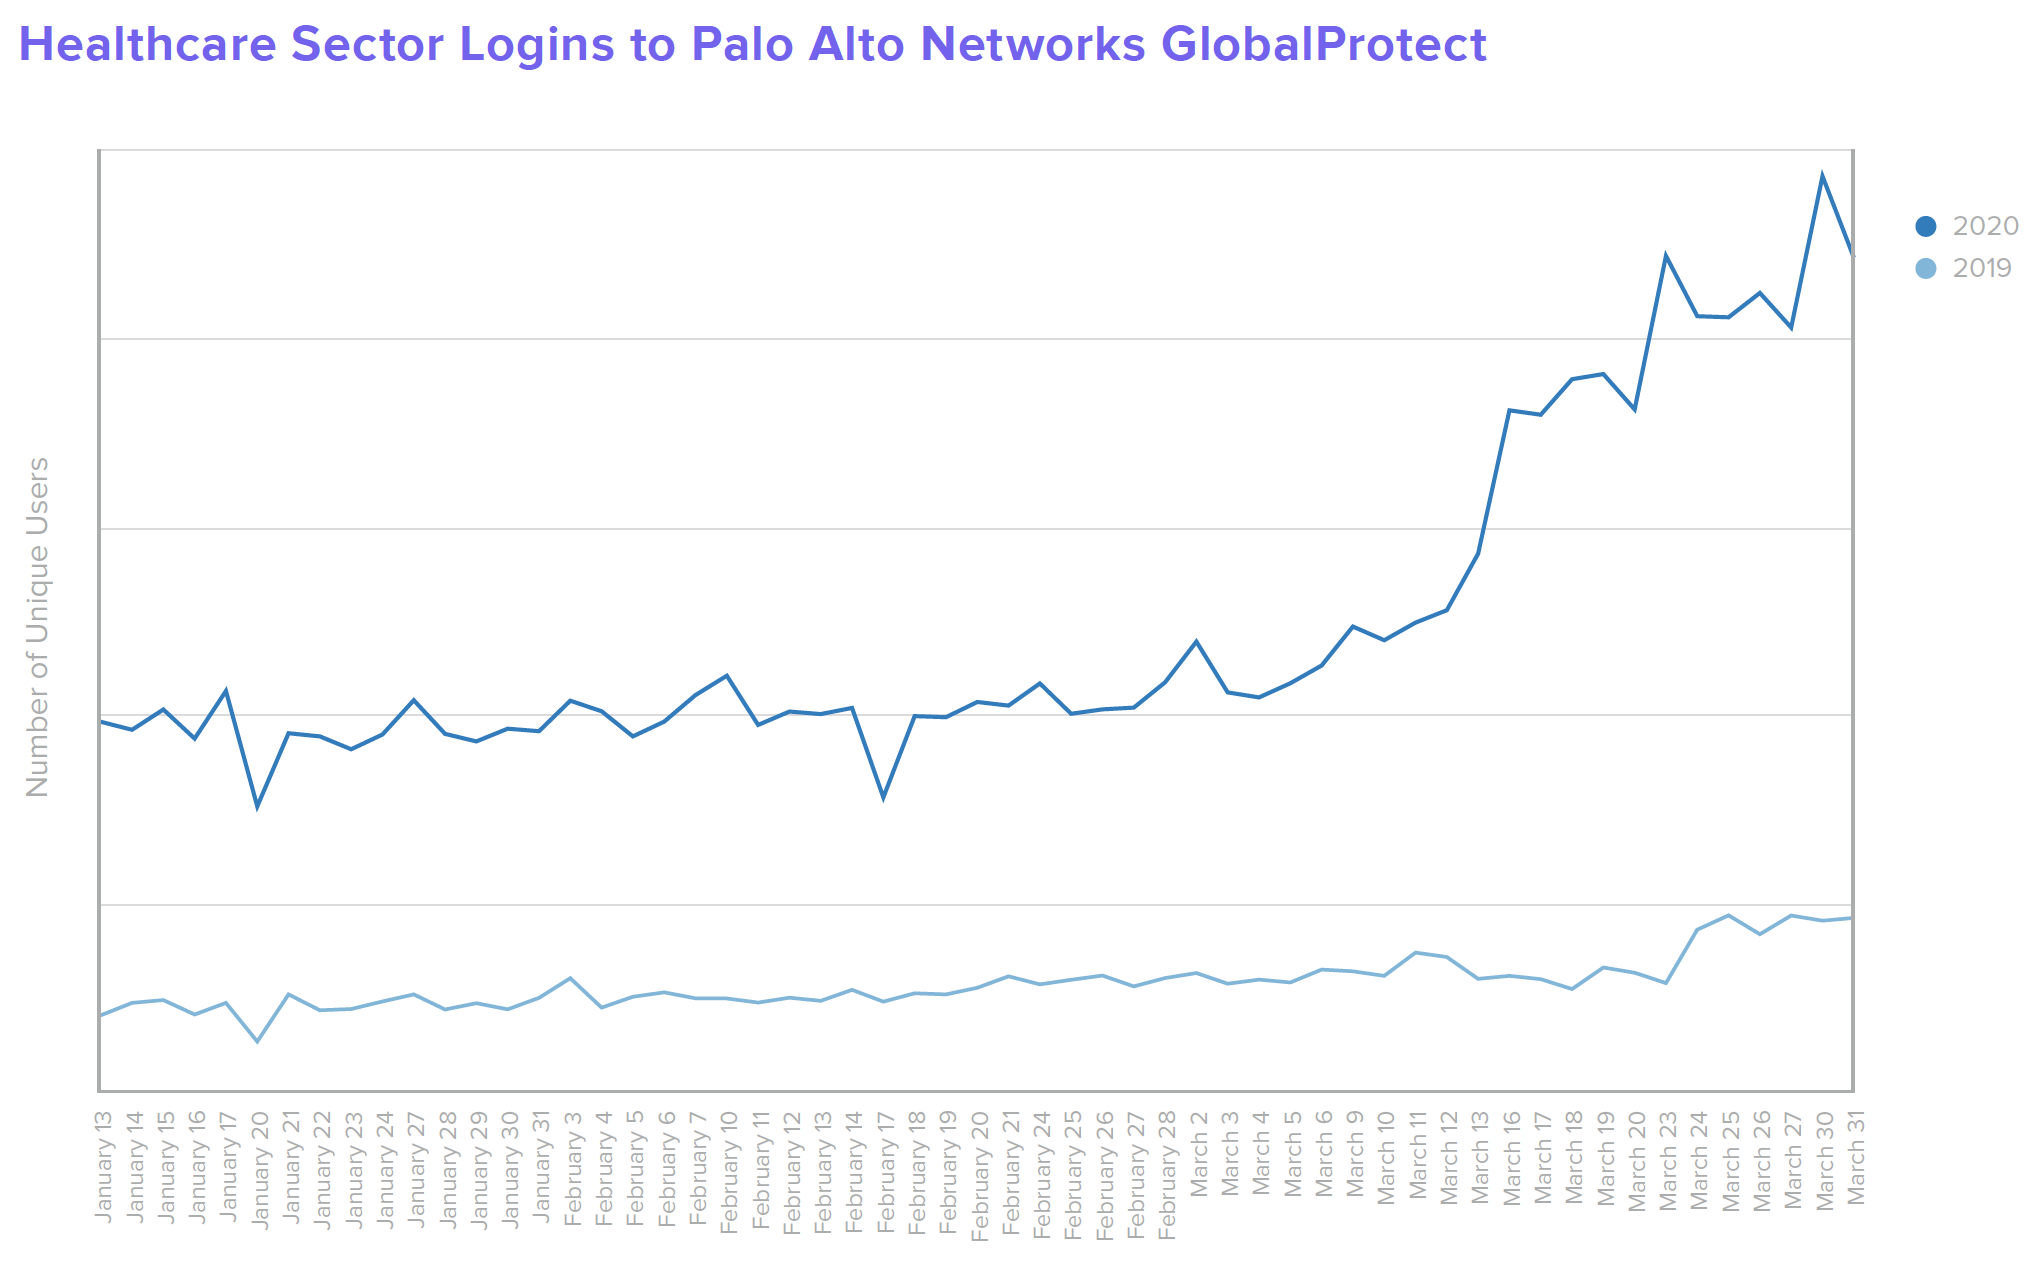 B W Healthcare Healthcare Sector Logins to Palo Alto Networks GlobalProtect